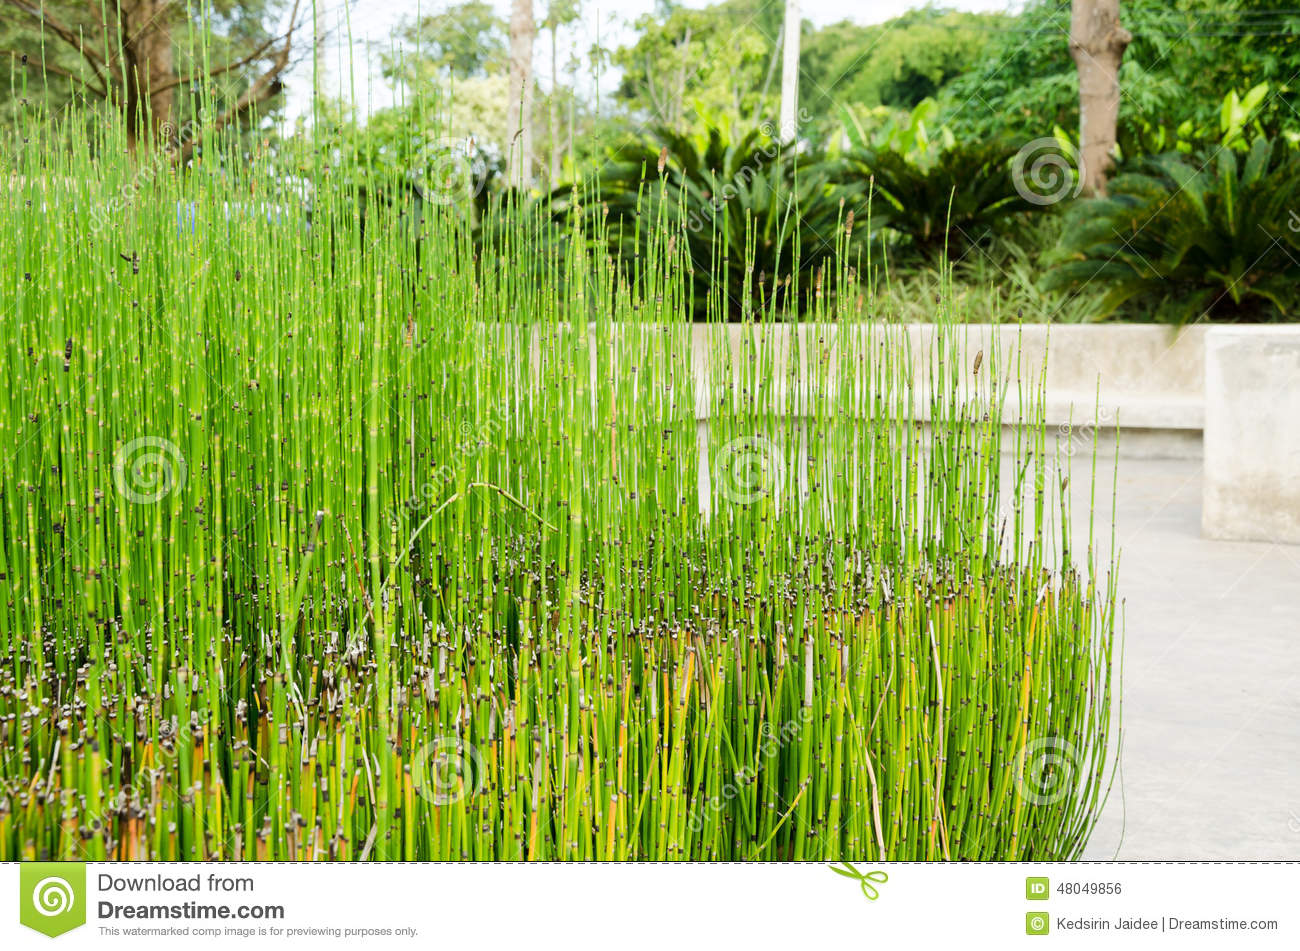 Plante Ornementale Des Jardins Of Plante Ornementale Dans Le Jardin Ext Rieur Photo Stock